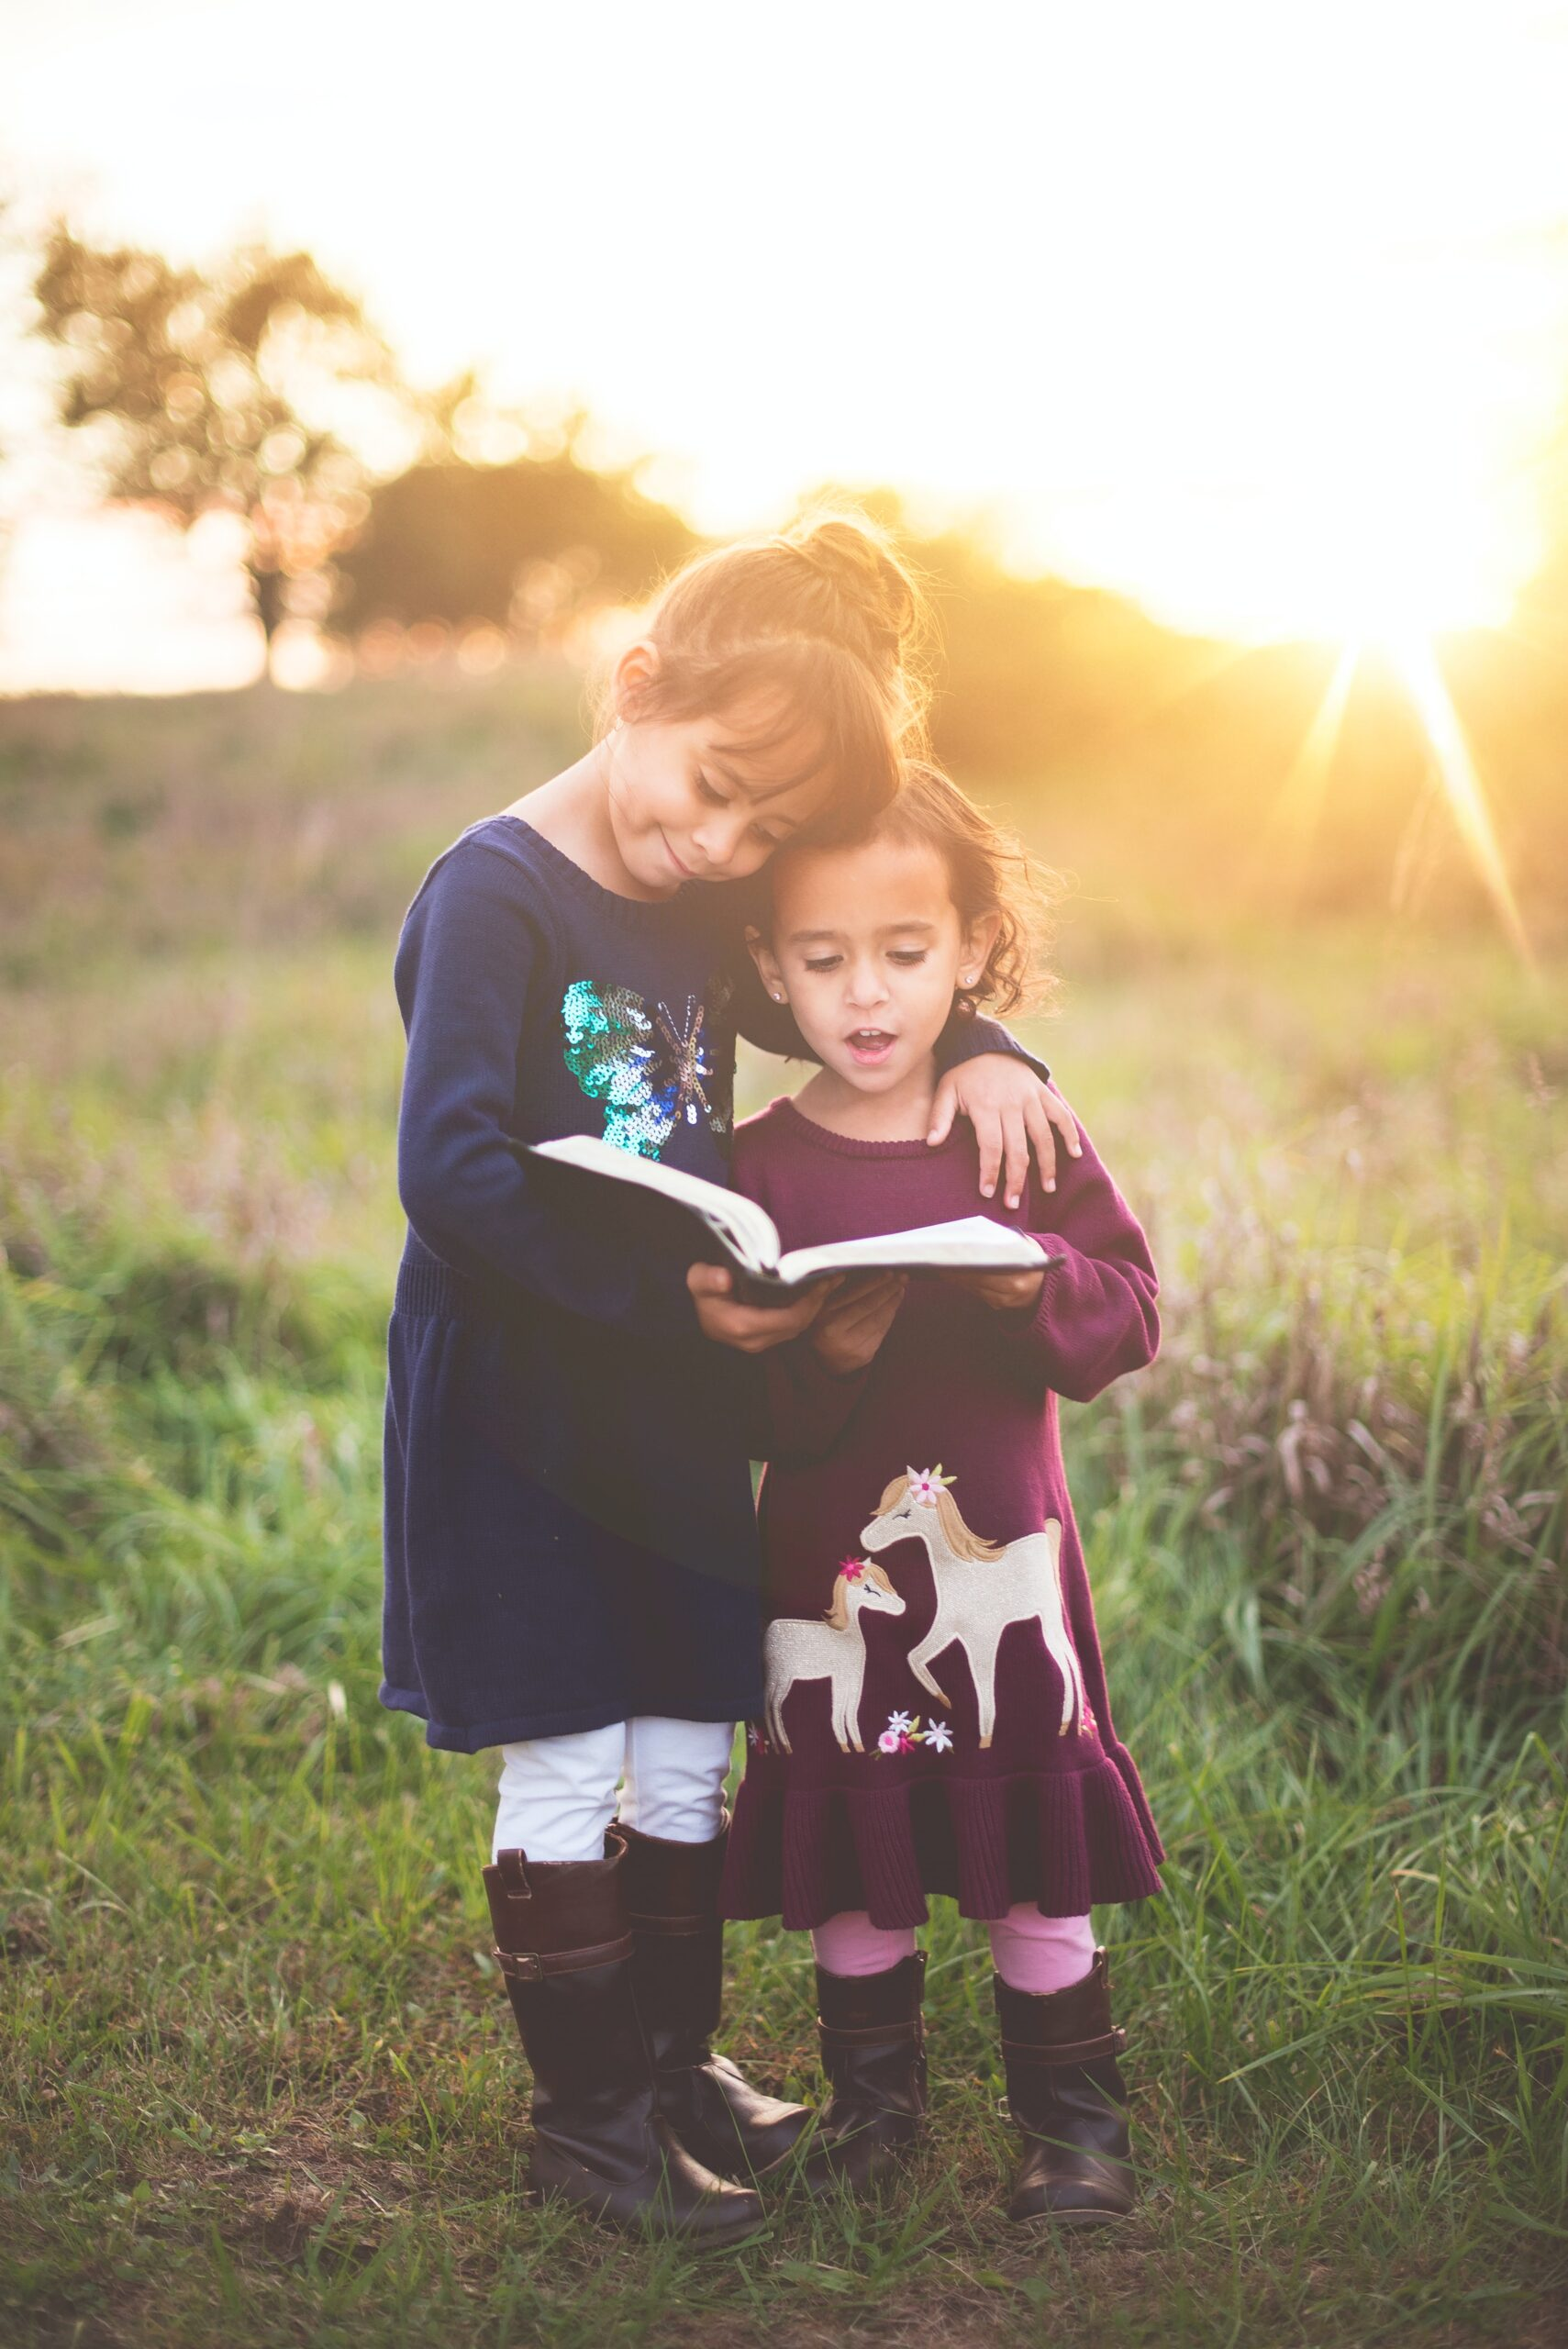 Sisters reading to each other in field by Ben White on Unsplash